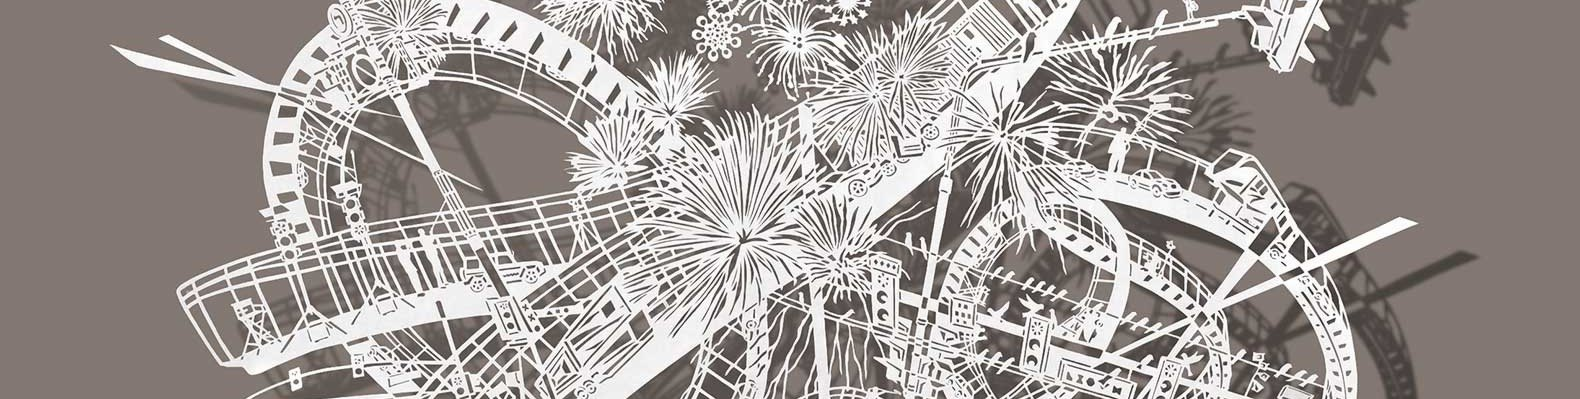 Bovey Lees Intricate Papercut Art Questions The Relationship - Incredible intricately cut paper designs bovey lee